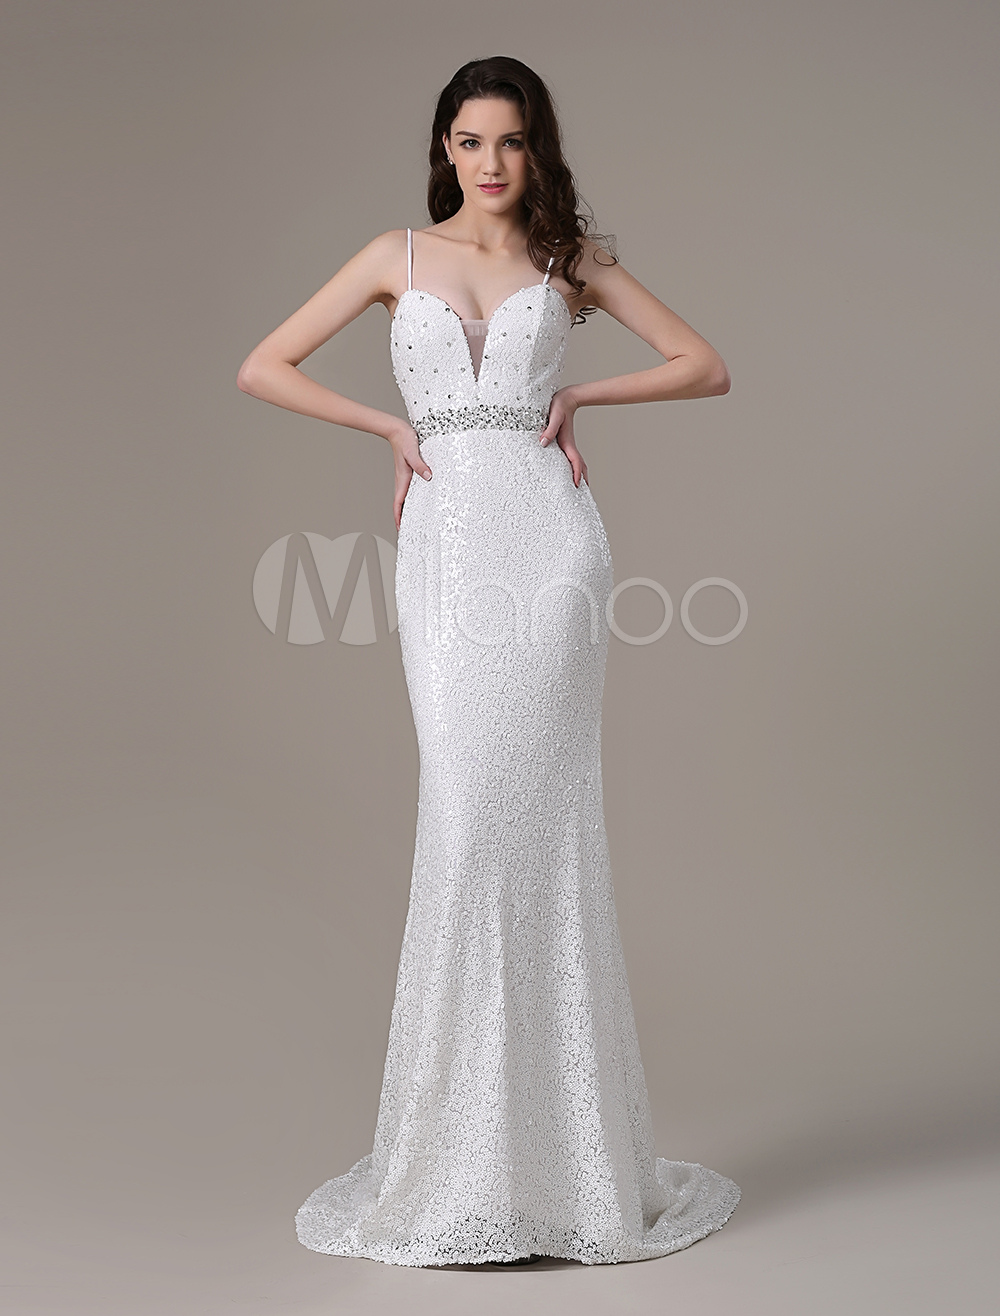 White Prom Dresses 2017 Long Ivory Mermaid Backless Evening Dress Deep V Neck Sequin Beading Party Dress WithTrain